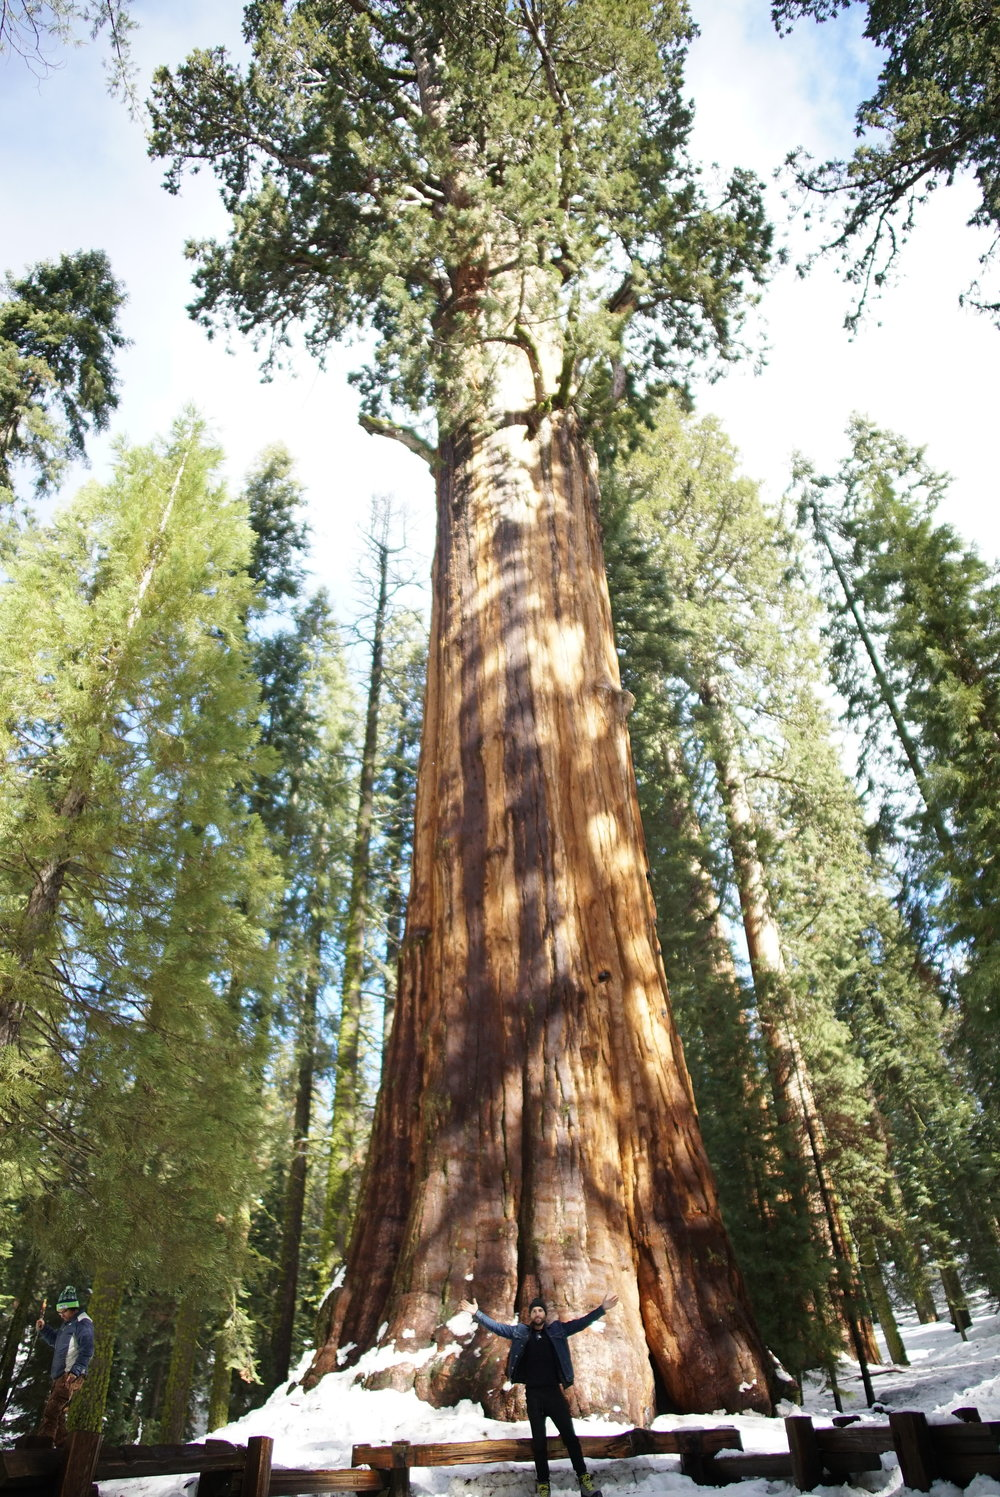 In front of the General Sherman Tree.